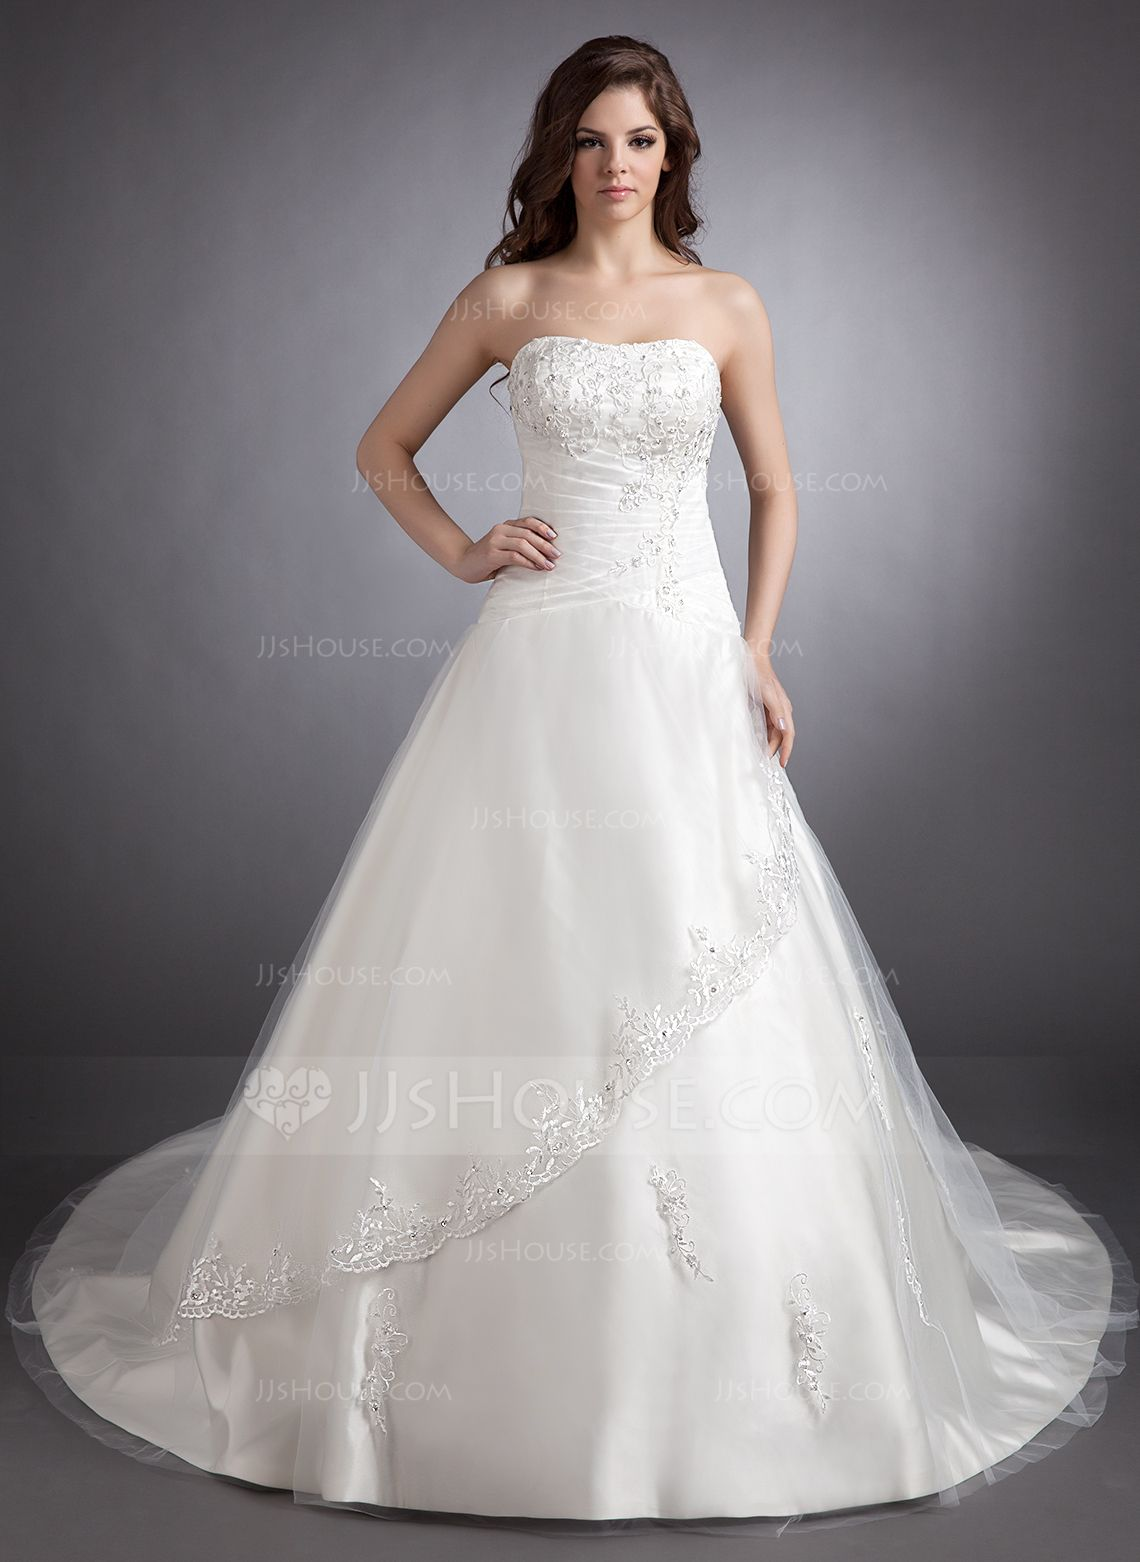 Us 227 00 Ball Gown Sweetheart Chapel Train Satin Wedding Dress With Lace Beading Jj S House Wedding Dresses Bridal Dresses Tulle Wedding Dress